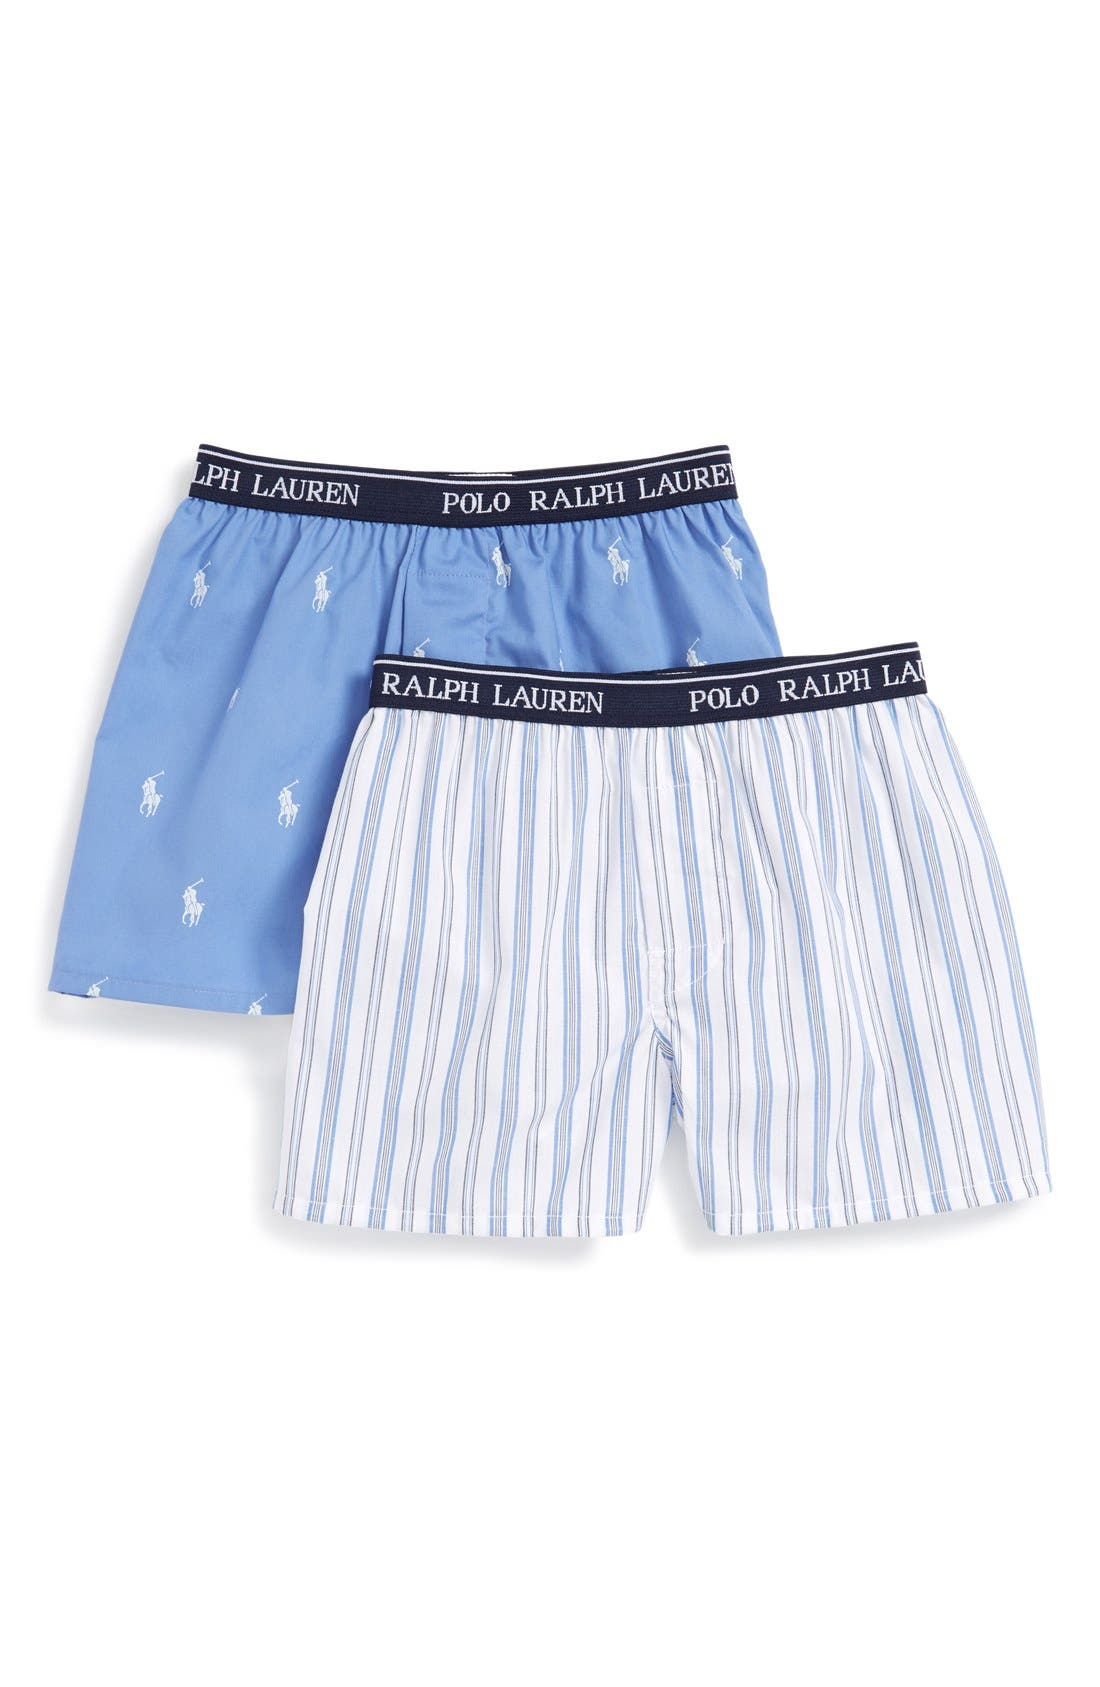 Polo Ralph Lauren Woven Boxers (2-Pack) (Big Boys)